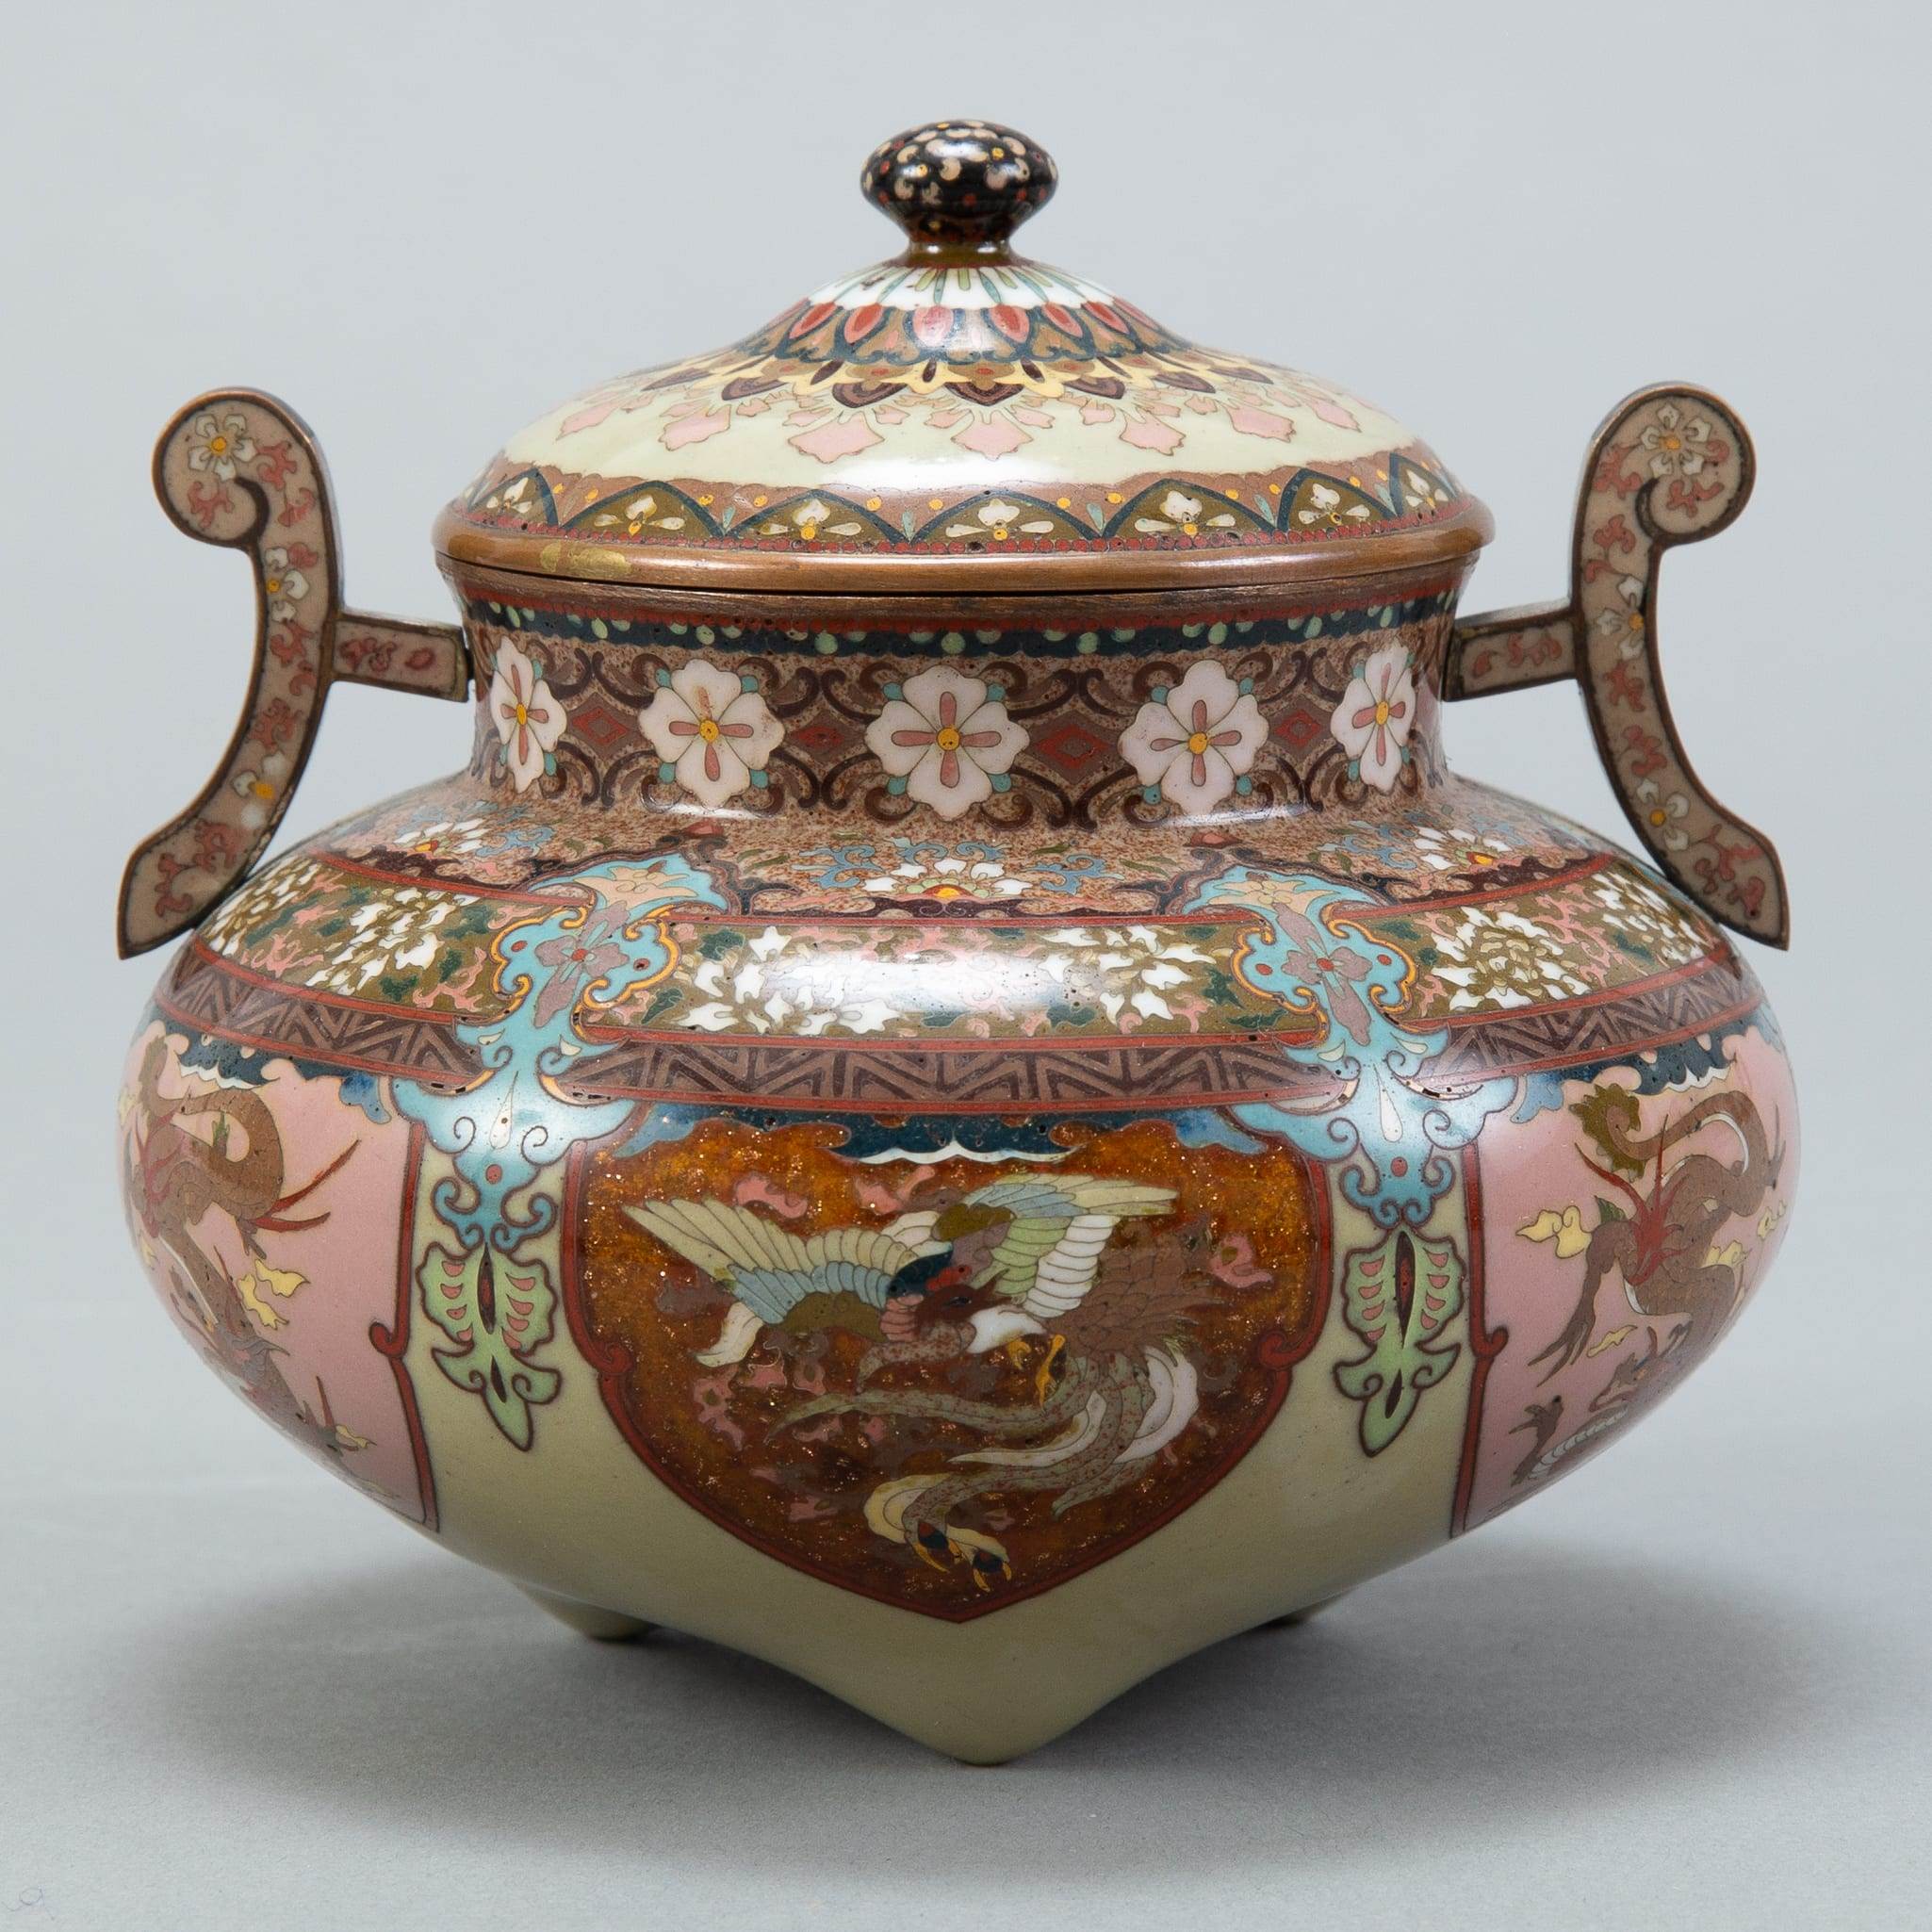 Lot 019: Japanese Meiji Cloisonne Censer